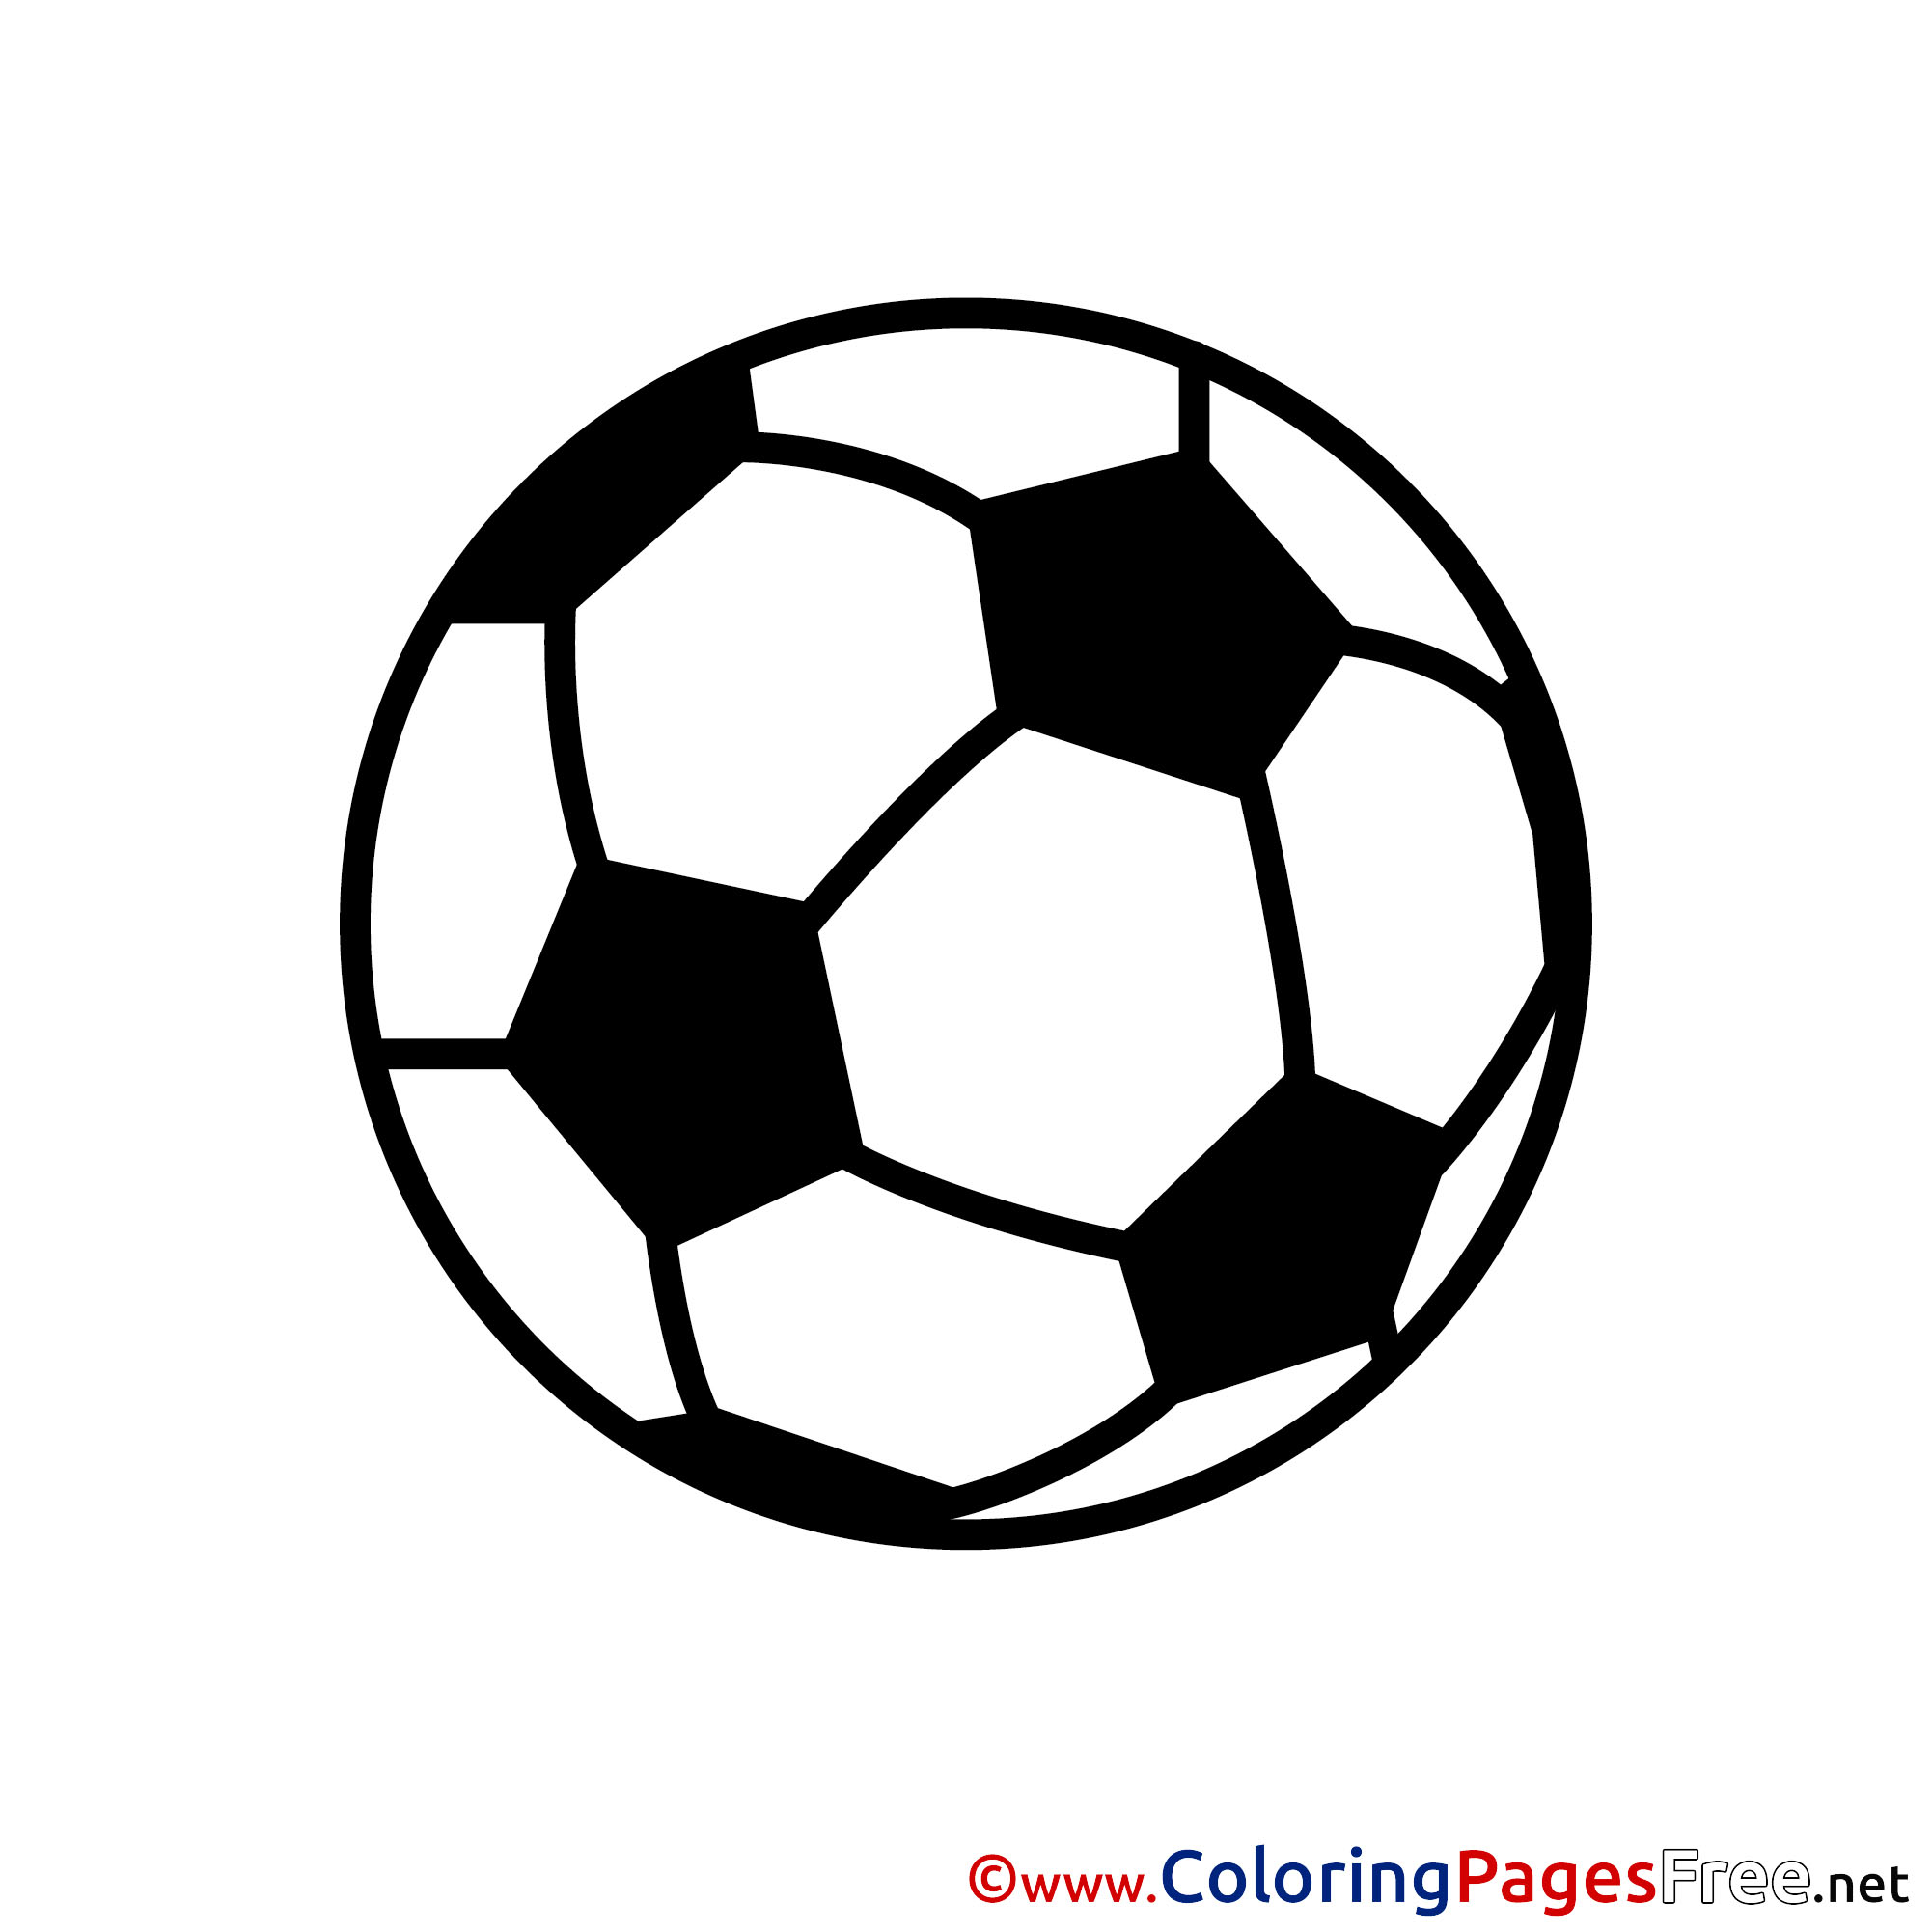 soccer ball coloring page soccer ball coloring pages download and print for free ball page soccer coloring